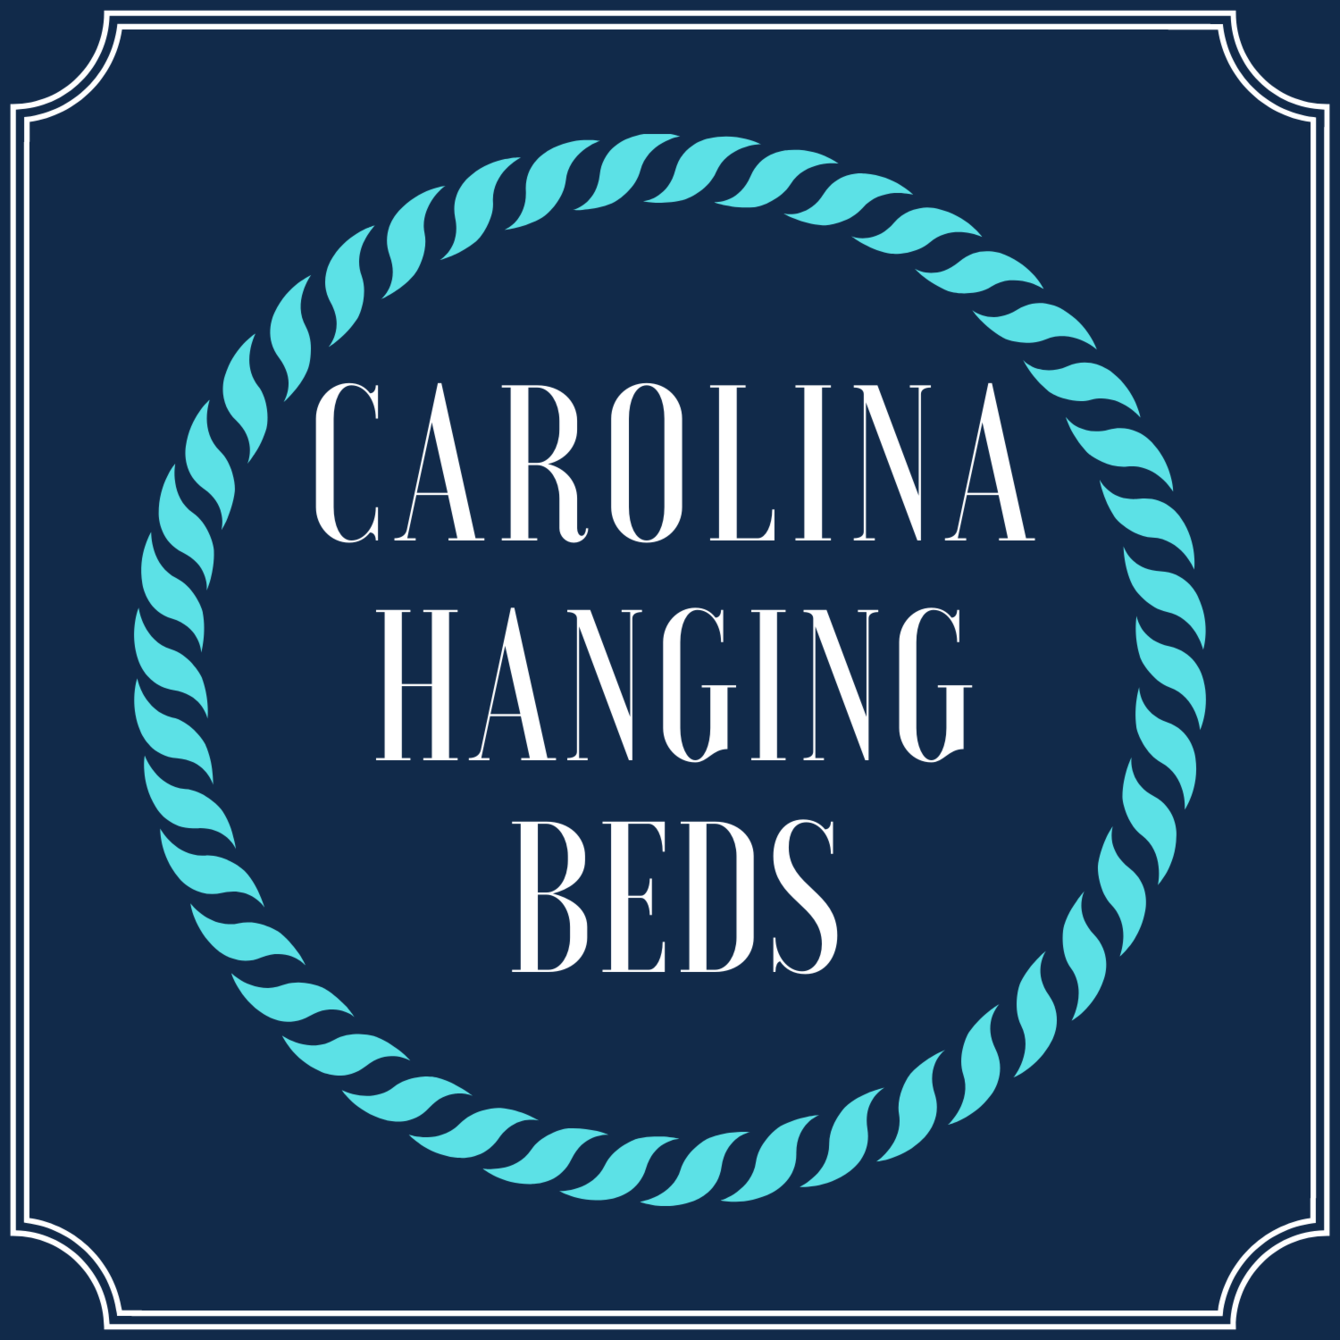 Carolina Hanging Beds